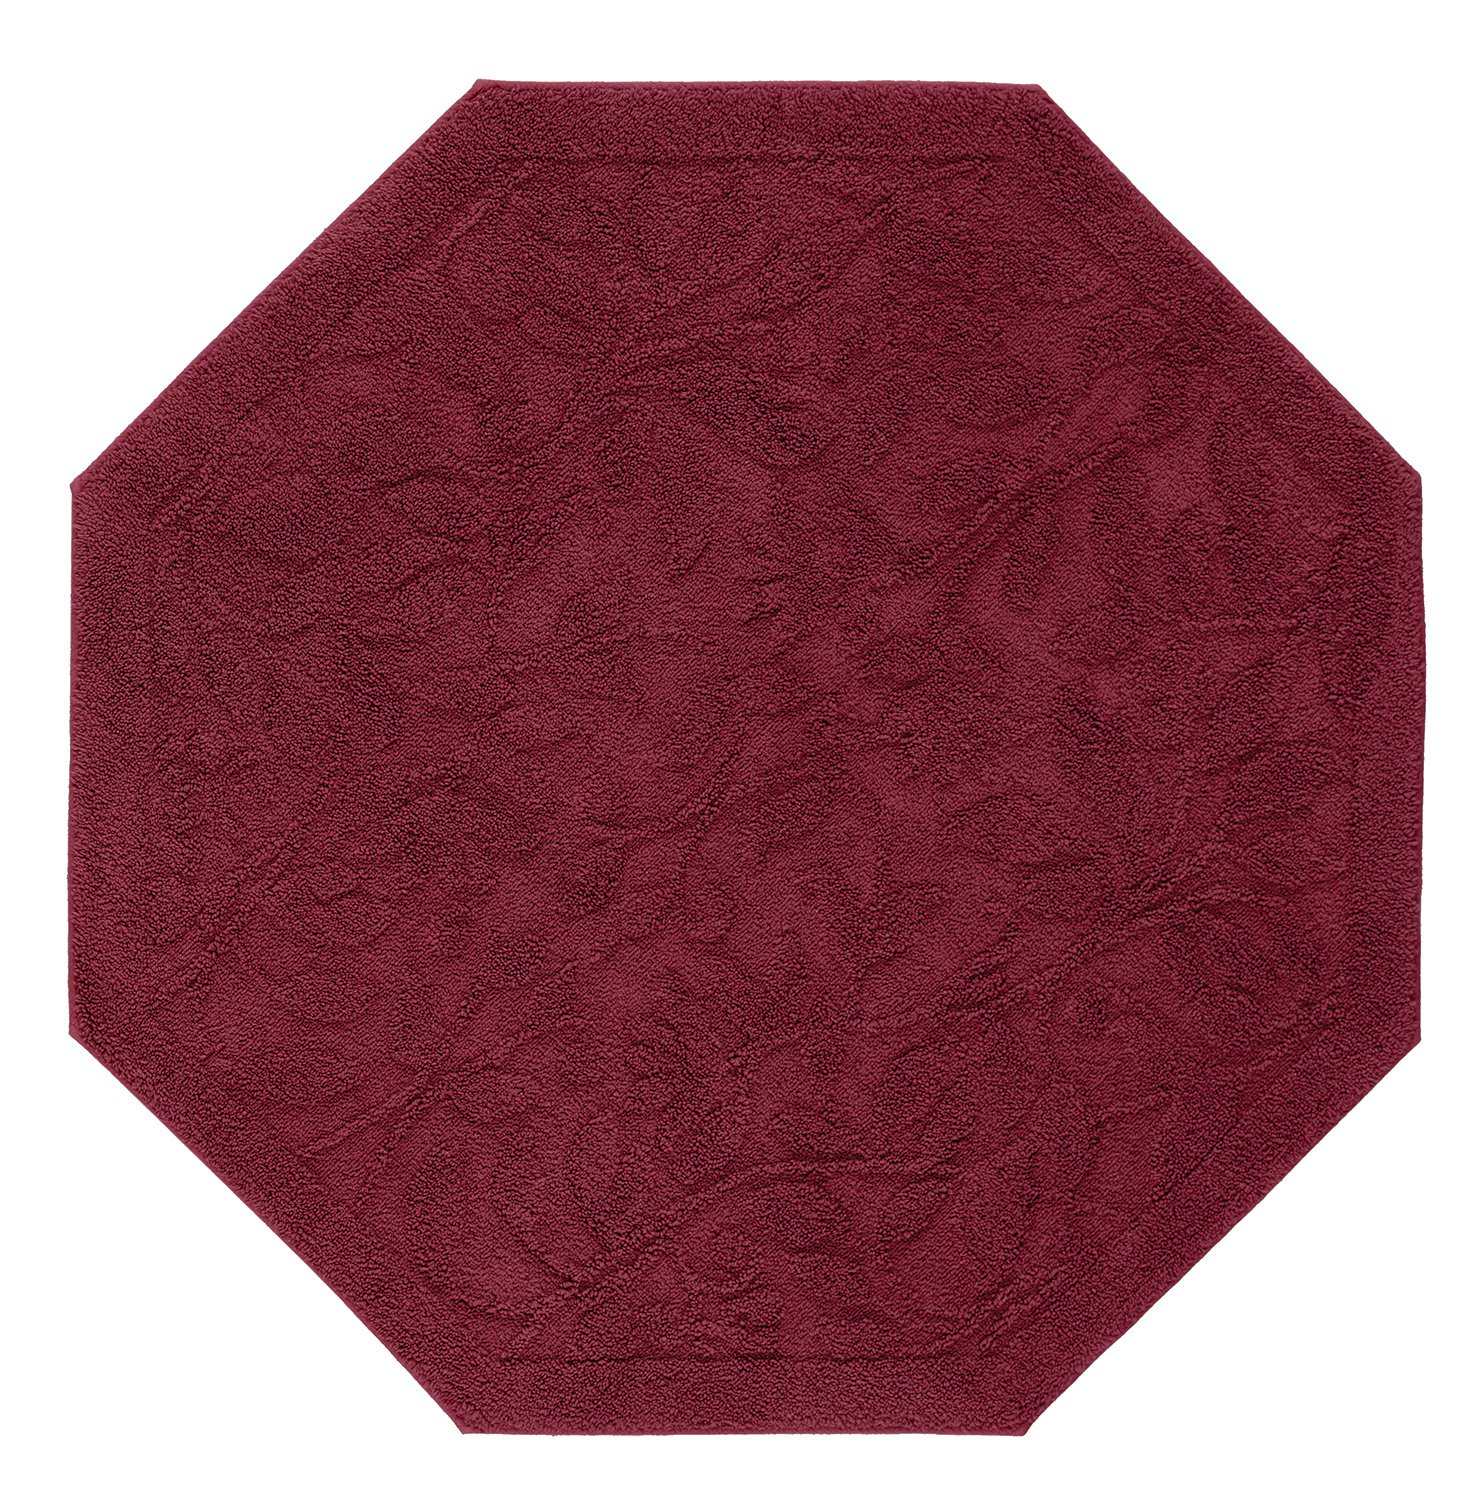 Mohawk Home Foliage Cabernet Octagon Accent Rug, 4'x4'